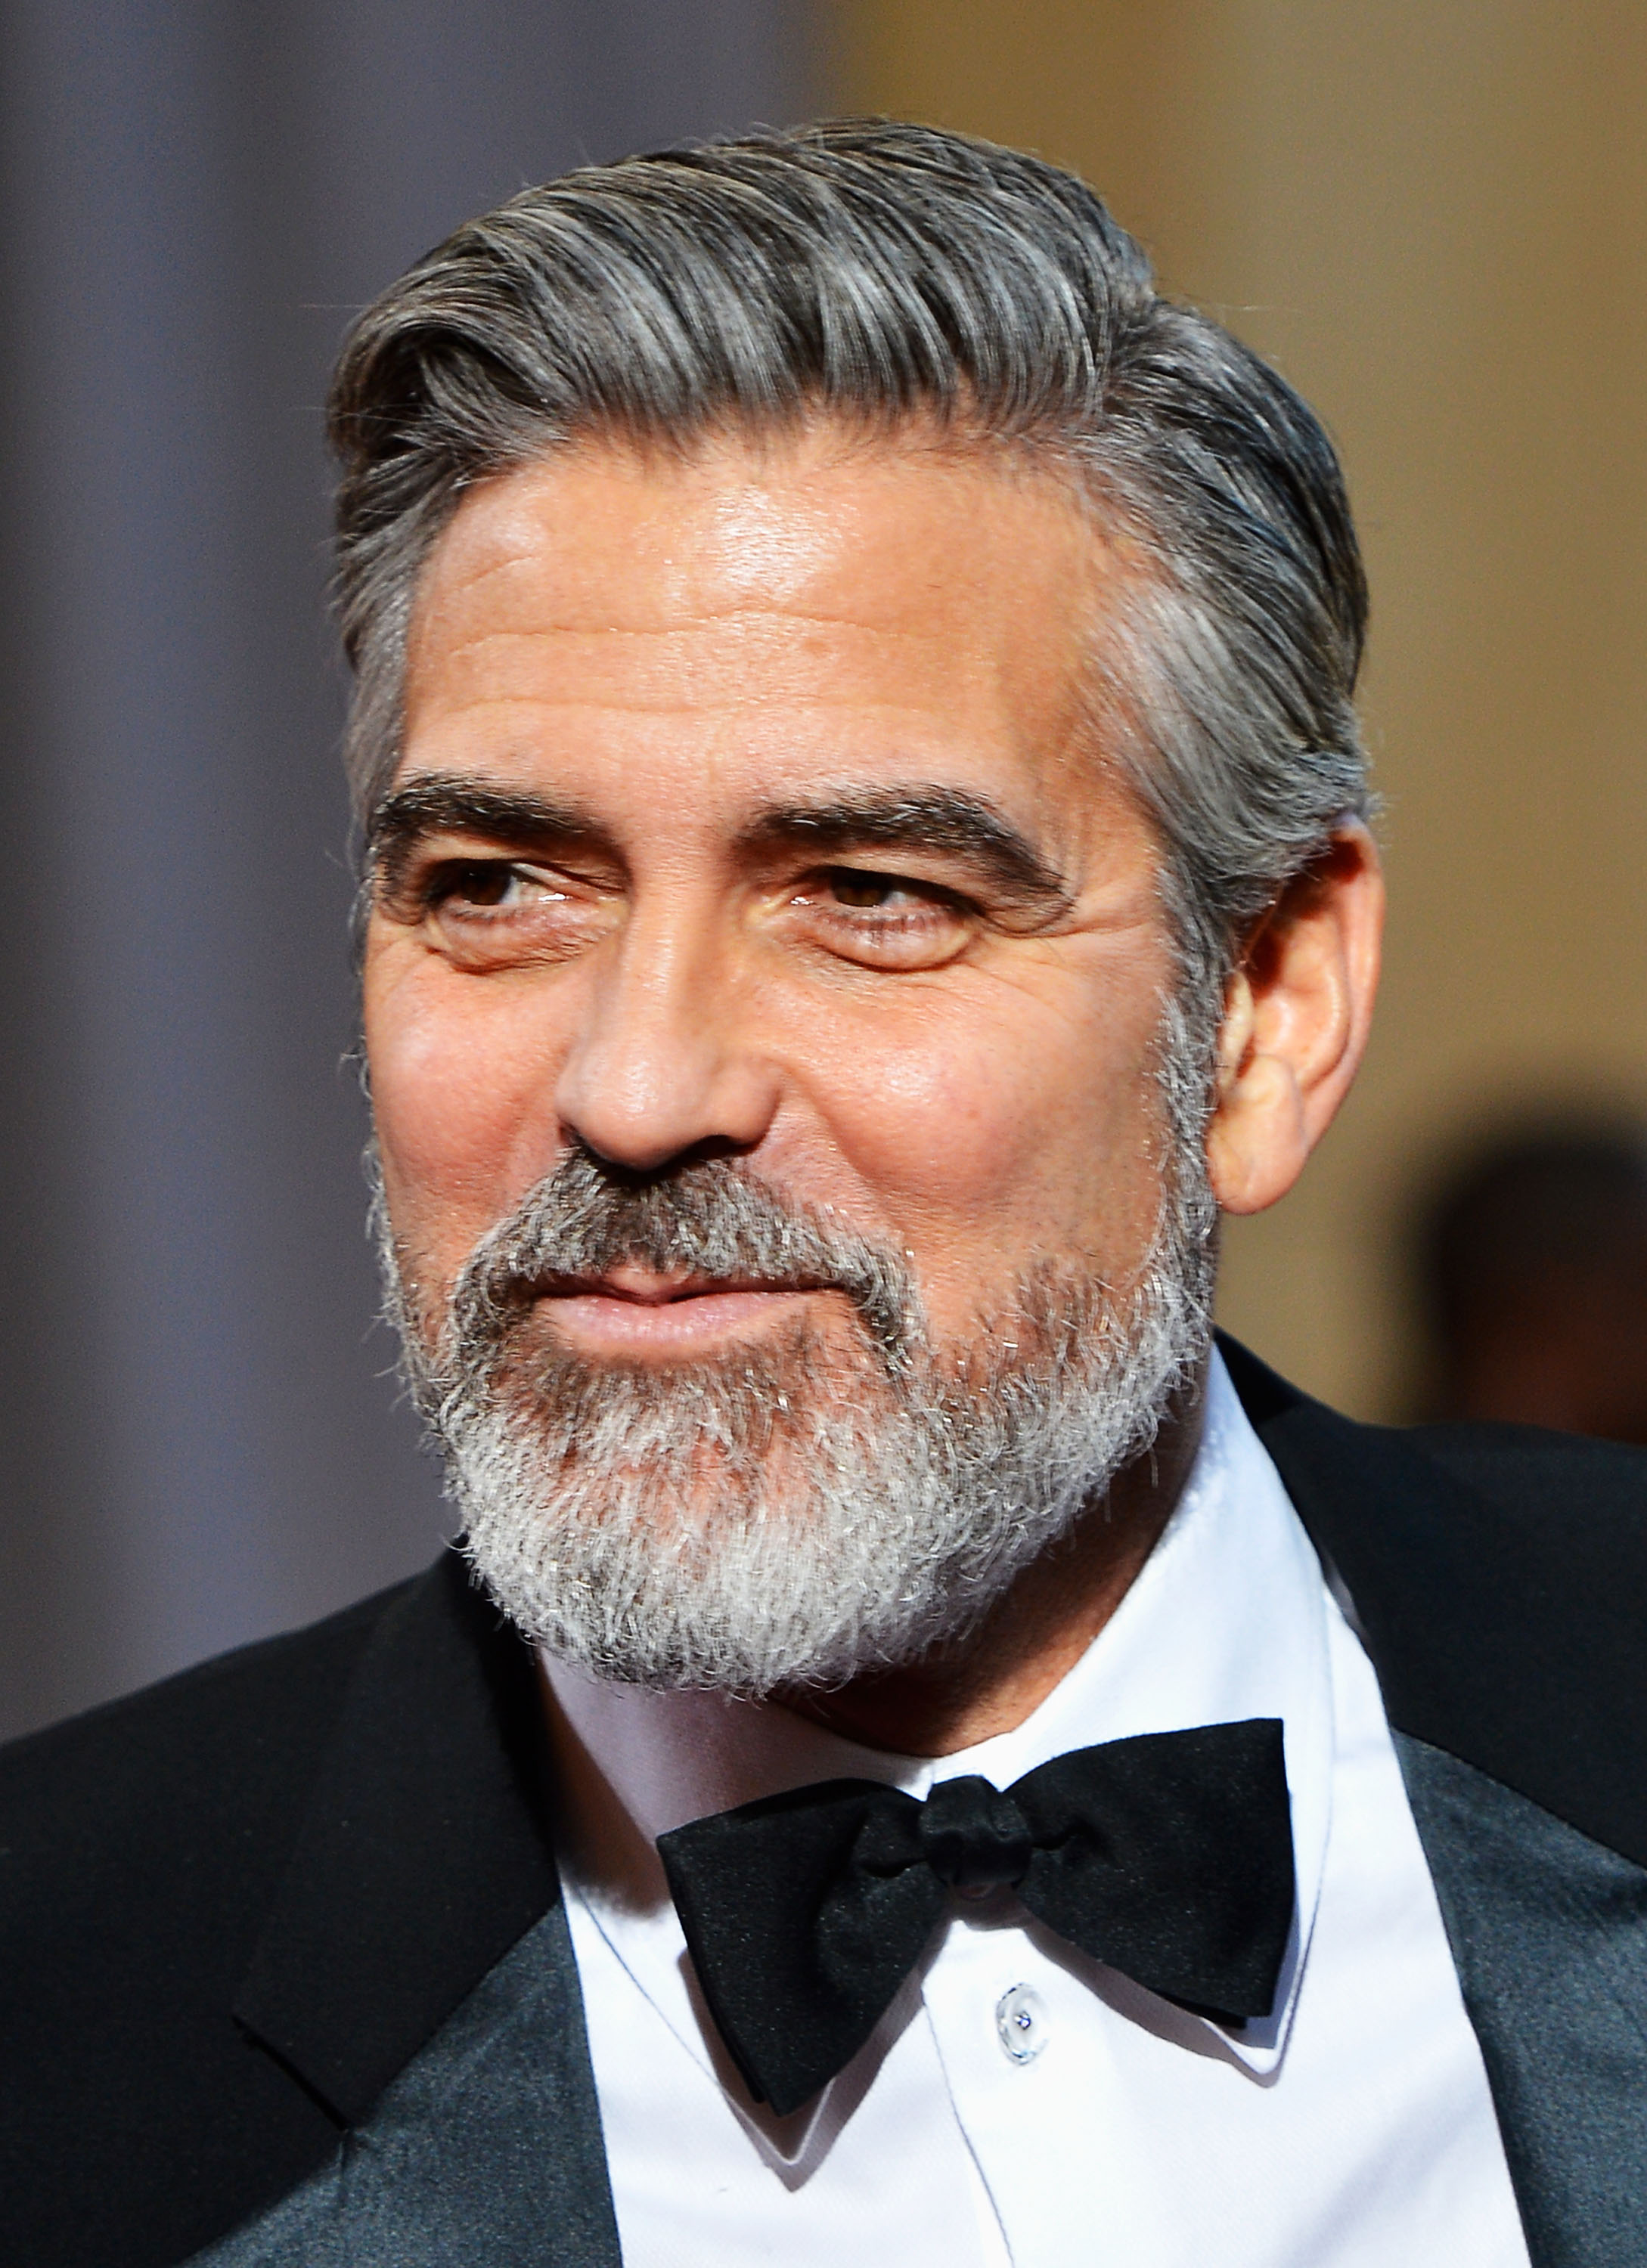 Sensational 15 Grey Person Icon With Beard Images Man With Gray Beard Men Hairstyle Inspiration Daily Dogsangcom